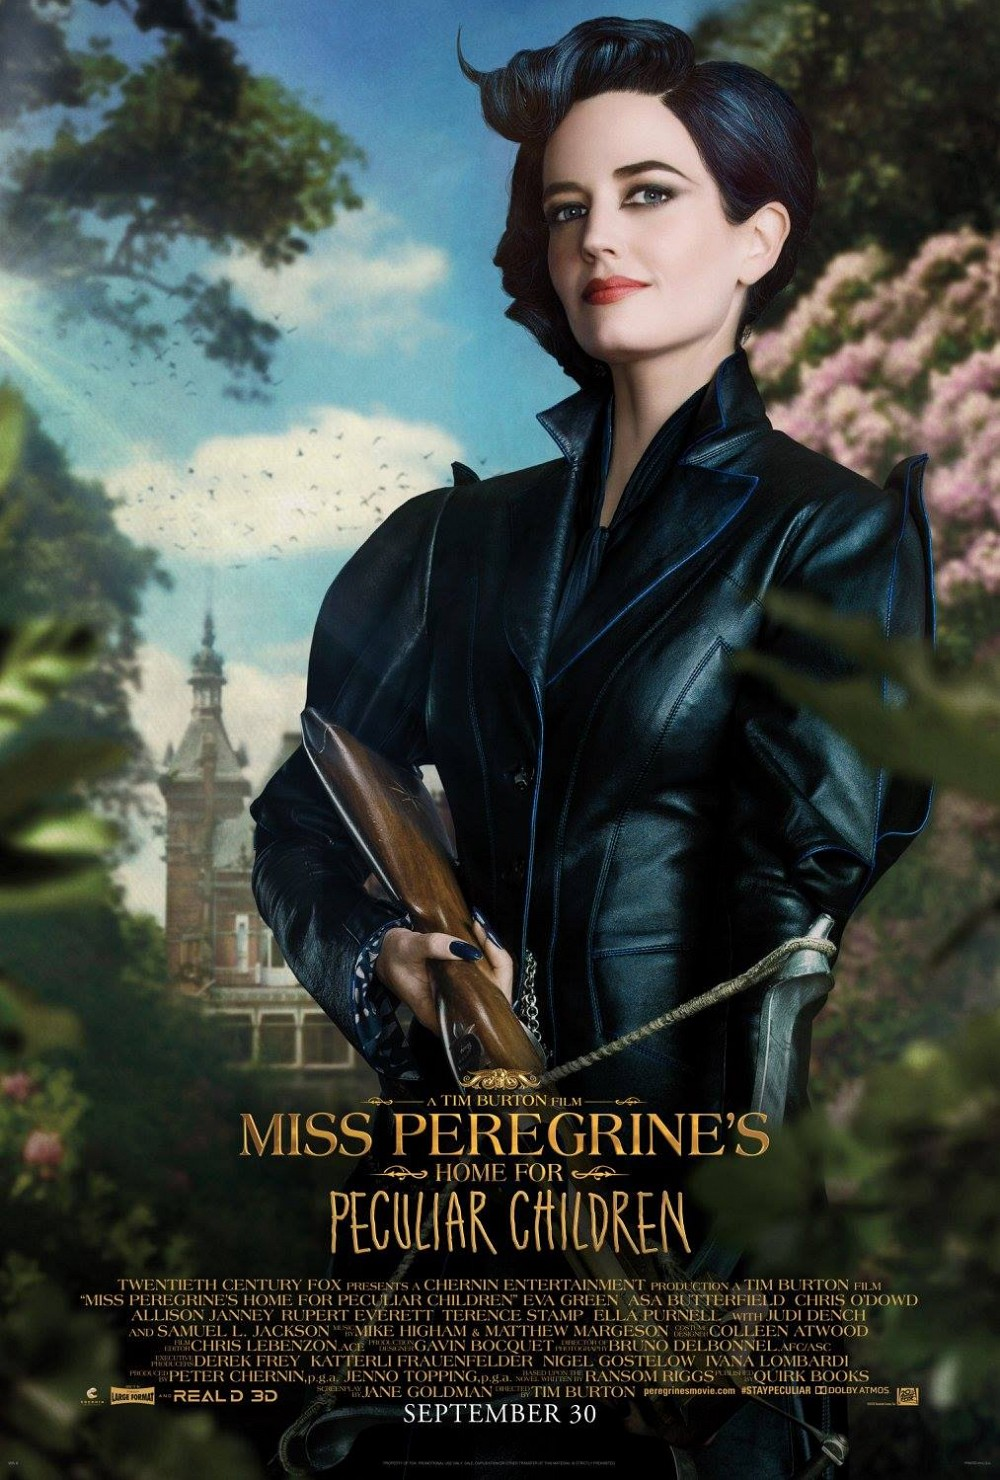 Meet The Residents Of Miss Peregrine's Home For Peculiar Children In These Character Posters